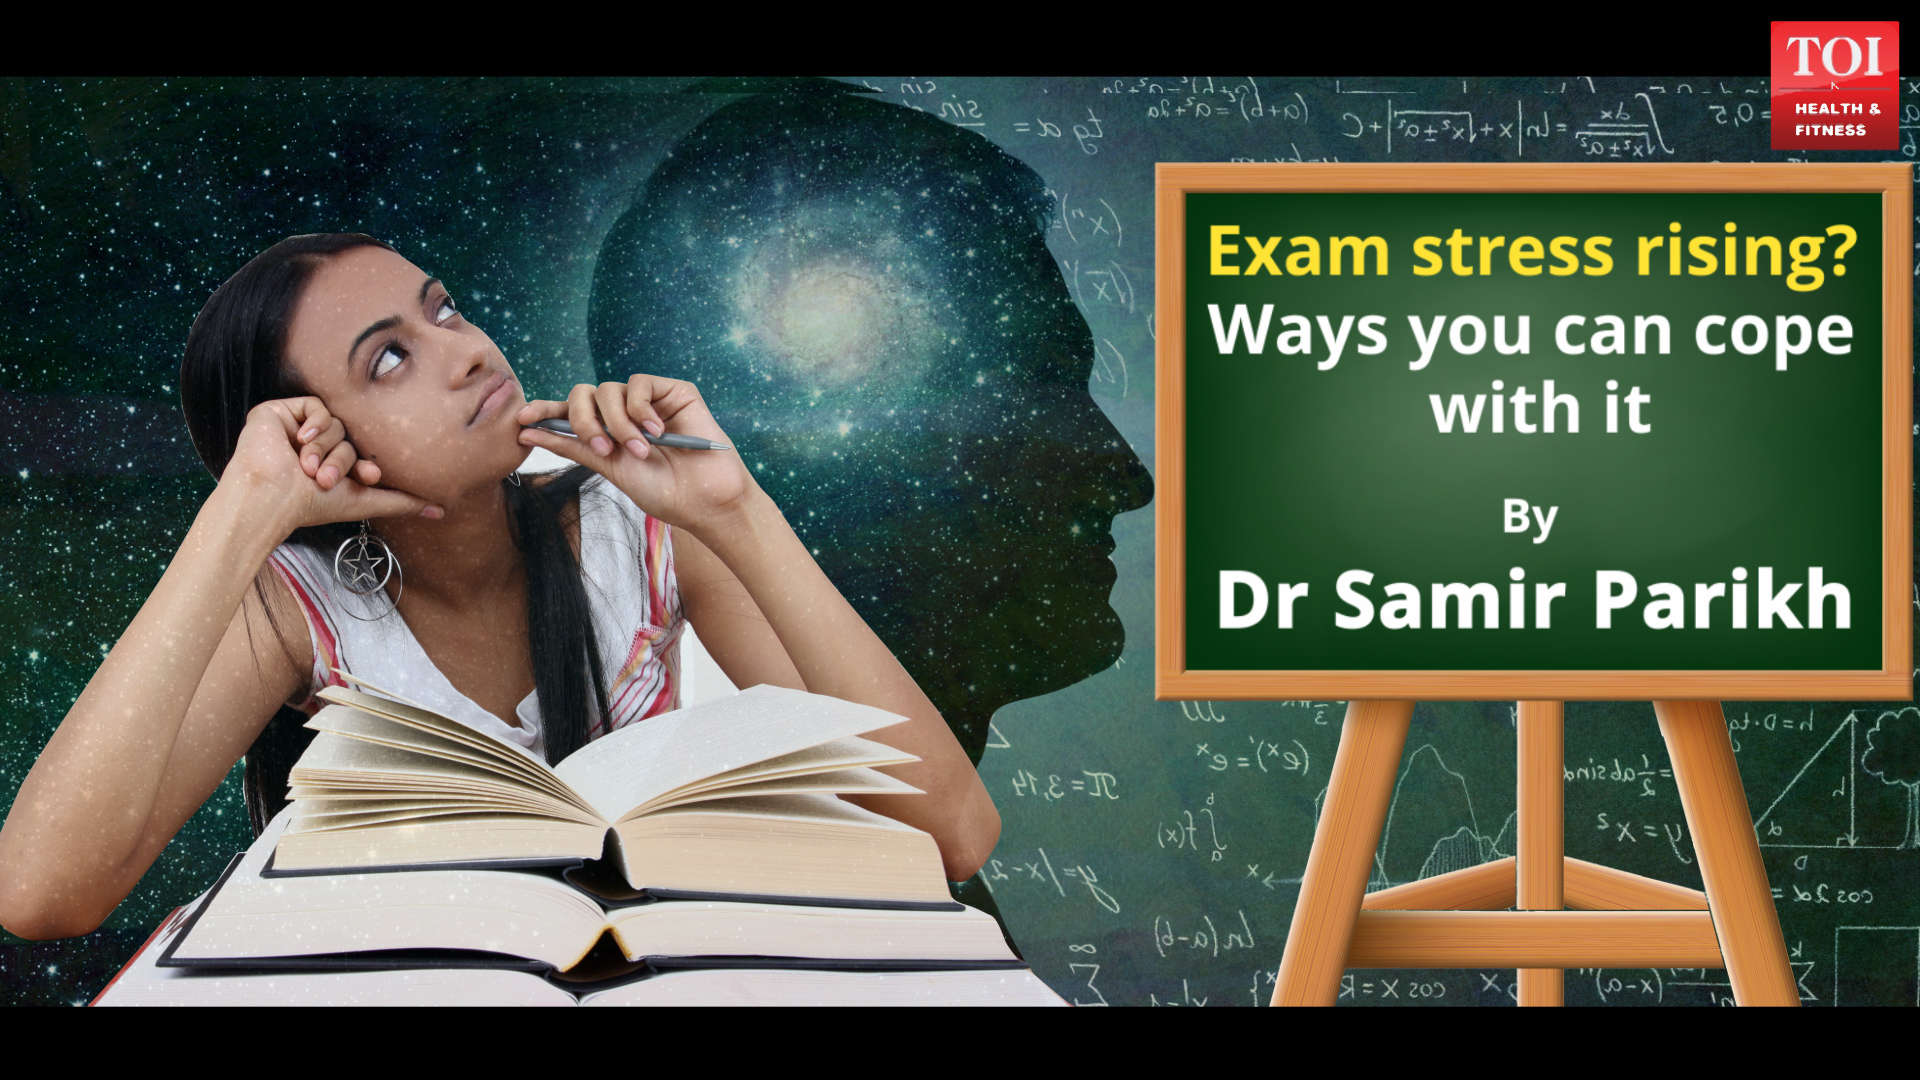 exam-stress-rising-ways-to-cope-with-it-by-dr-samir-parikh